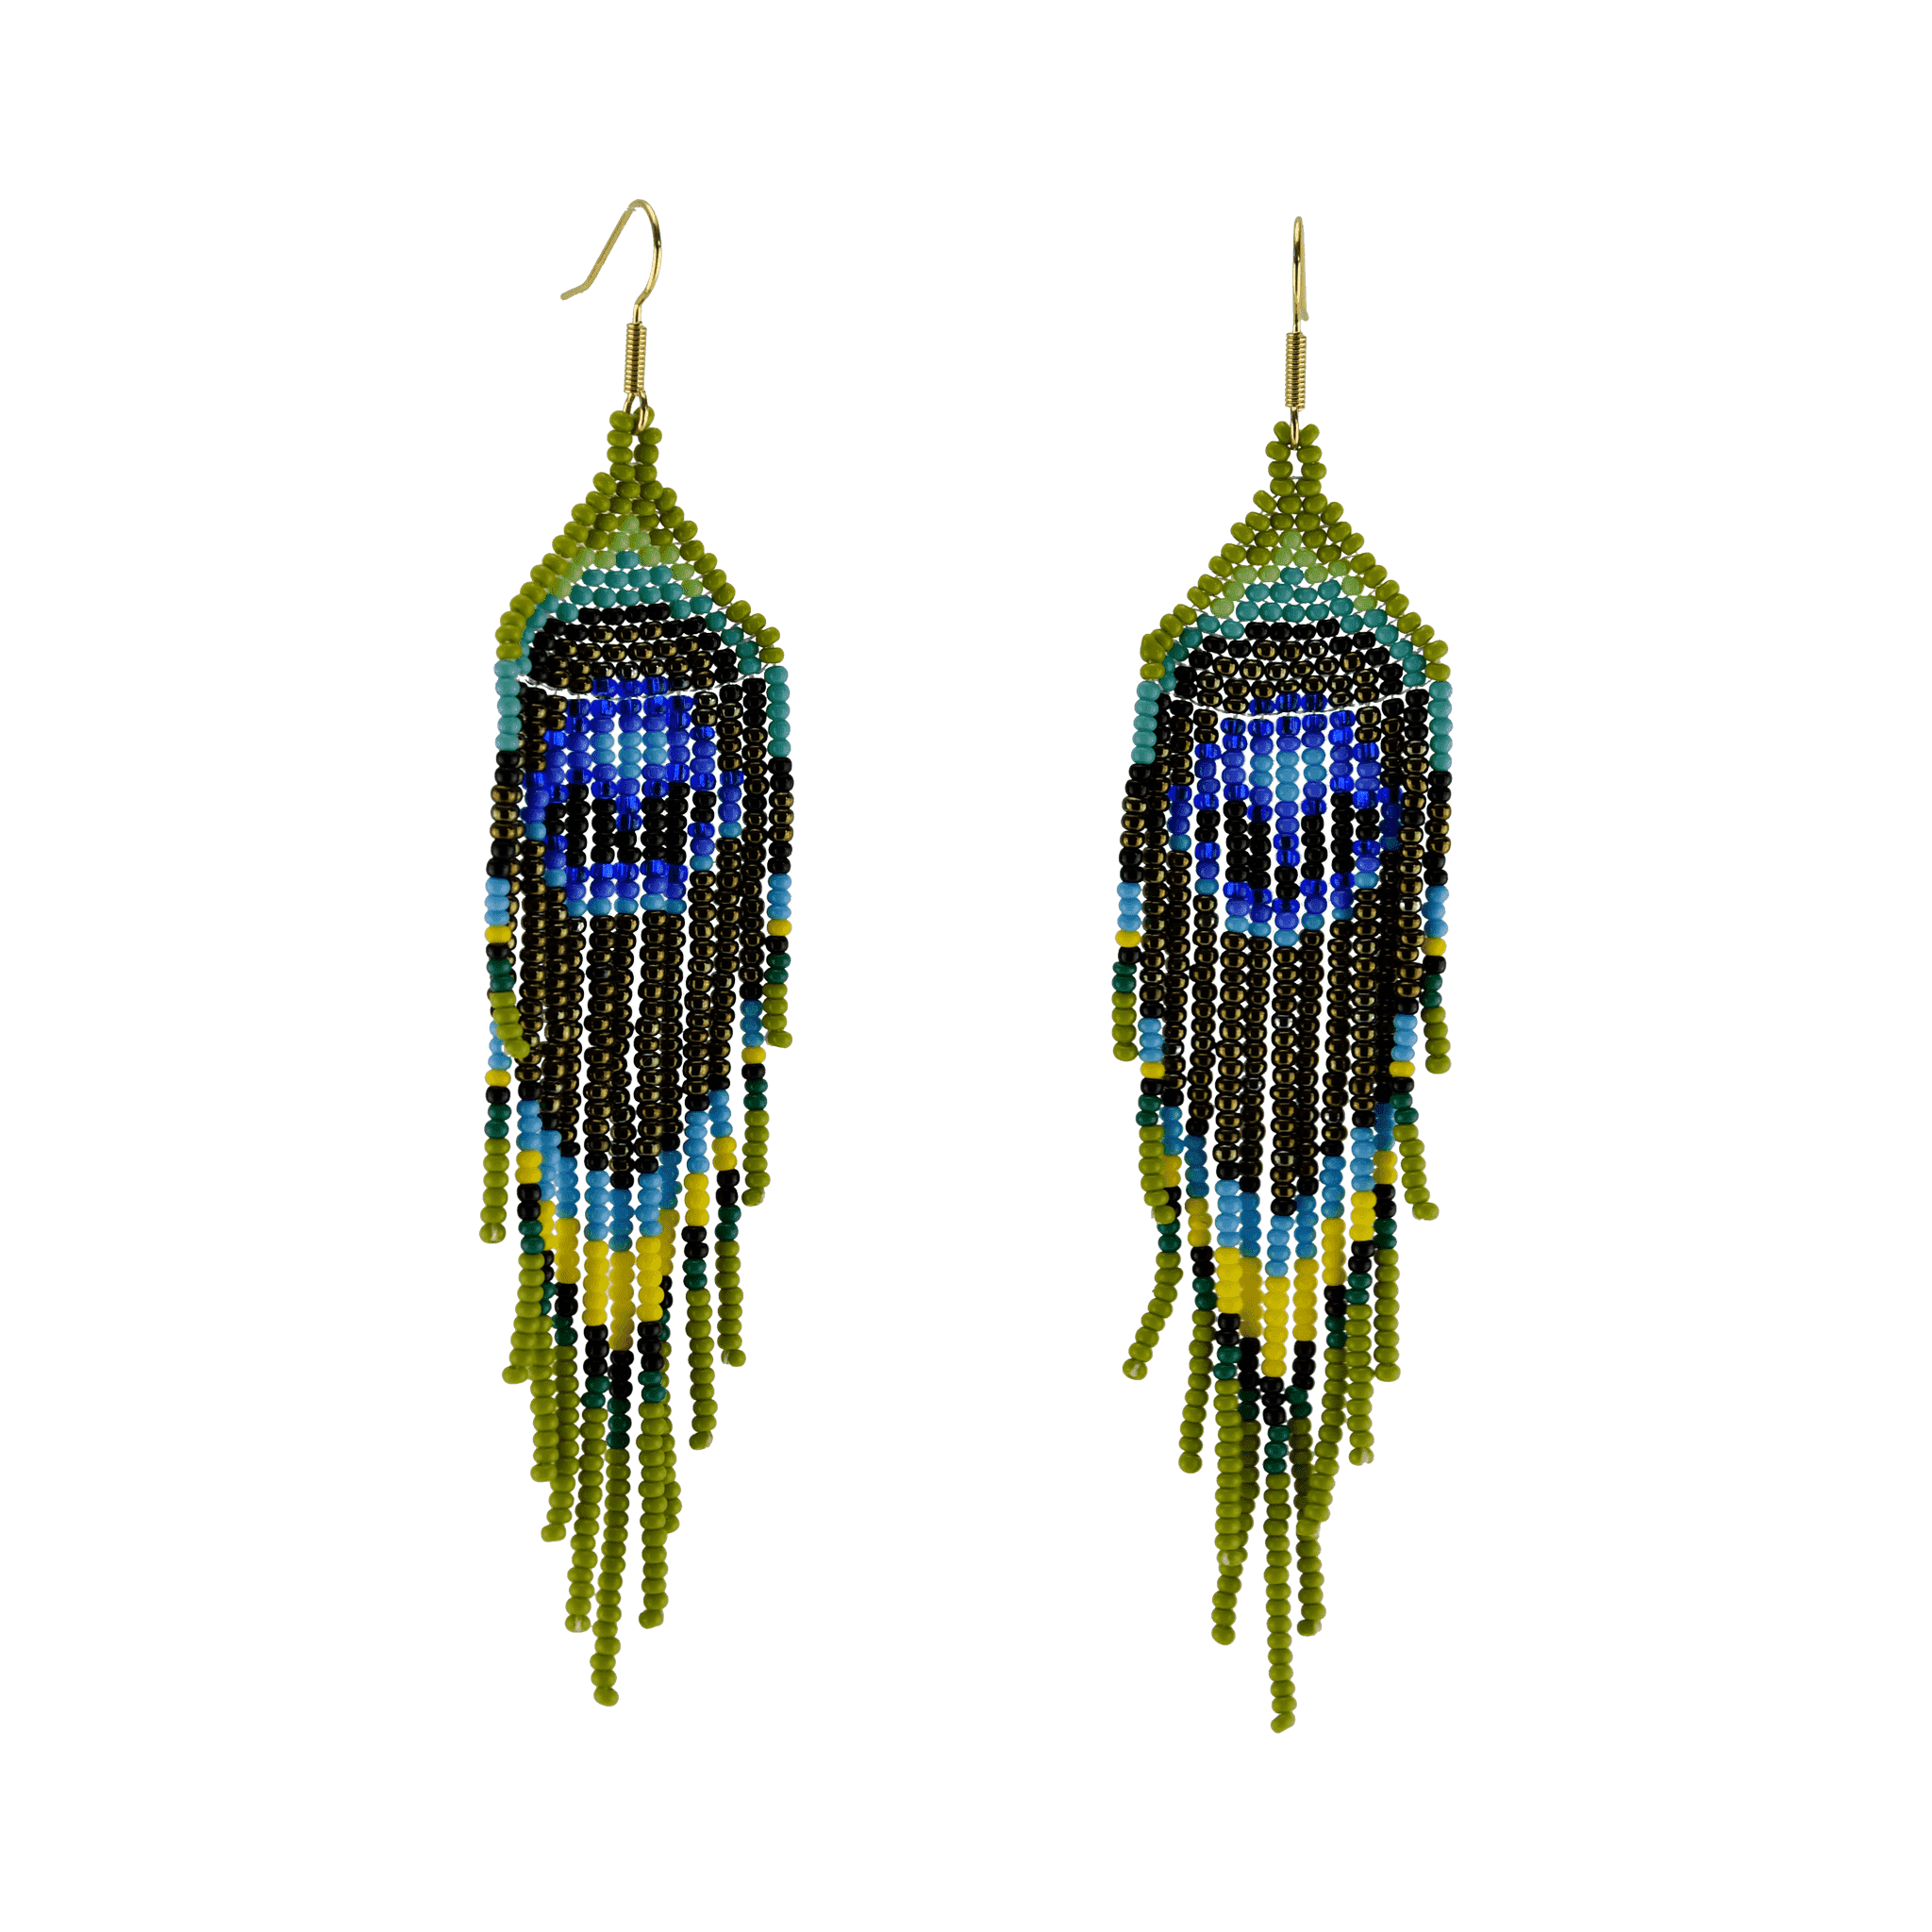 Click to shop - The Royal Peacock Earrings